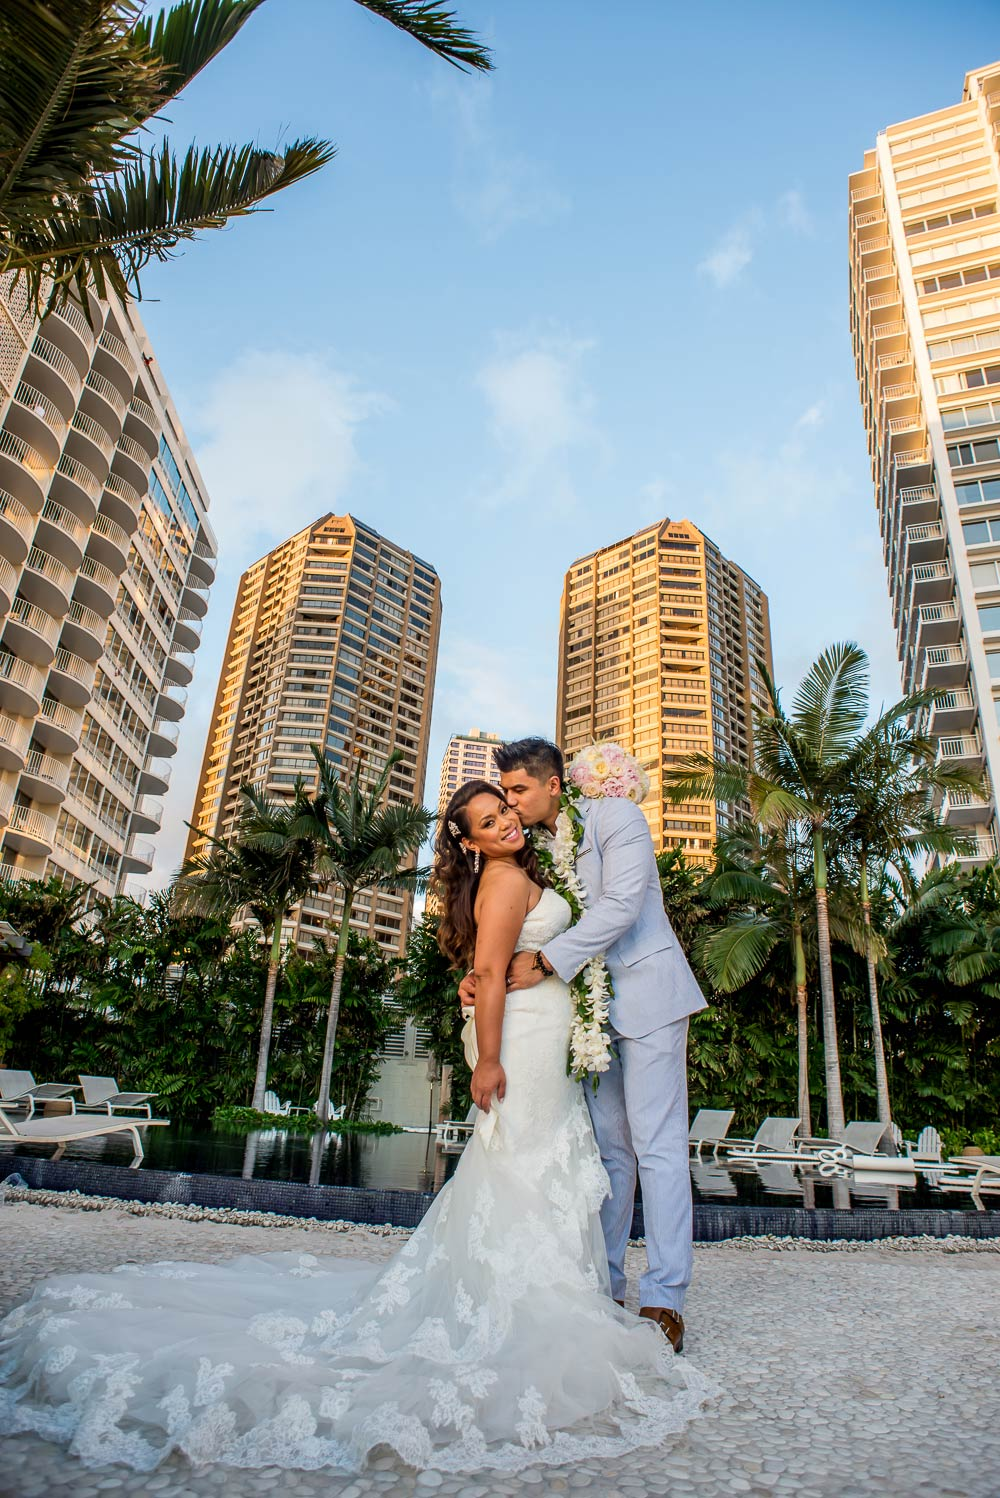 Destination Wedding Photography | Hawaii | Mel and Tim Photography